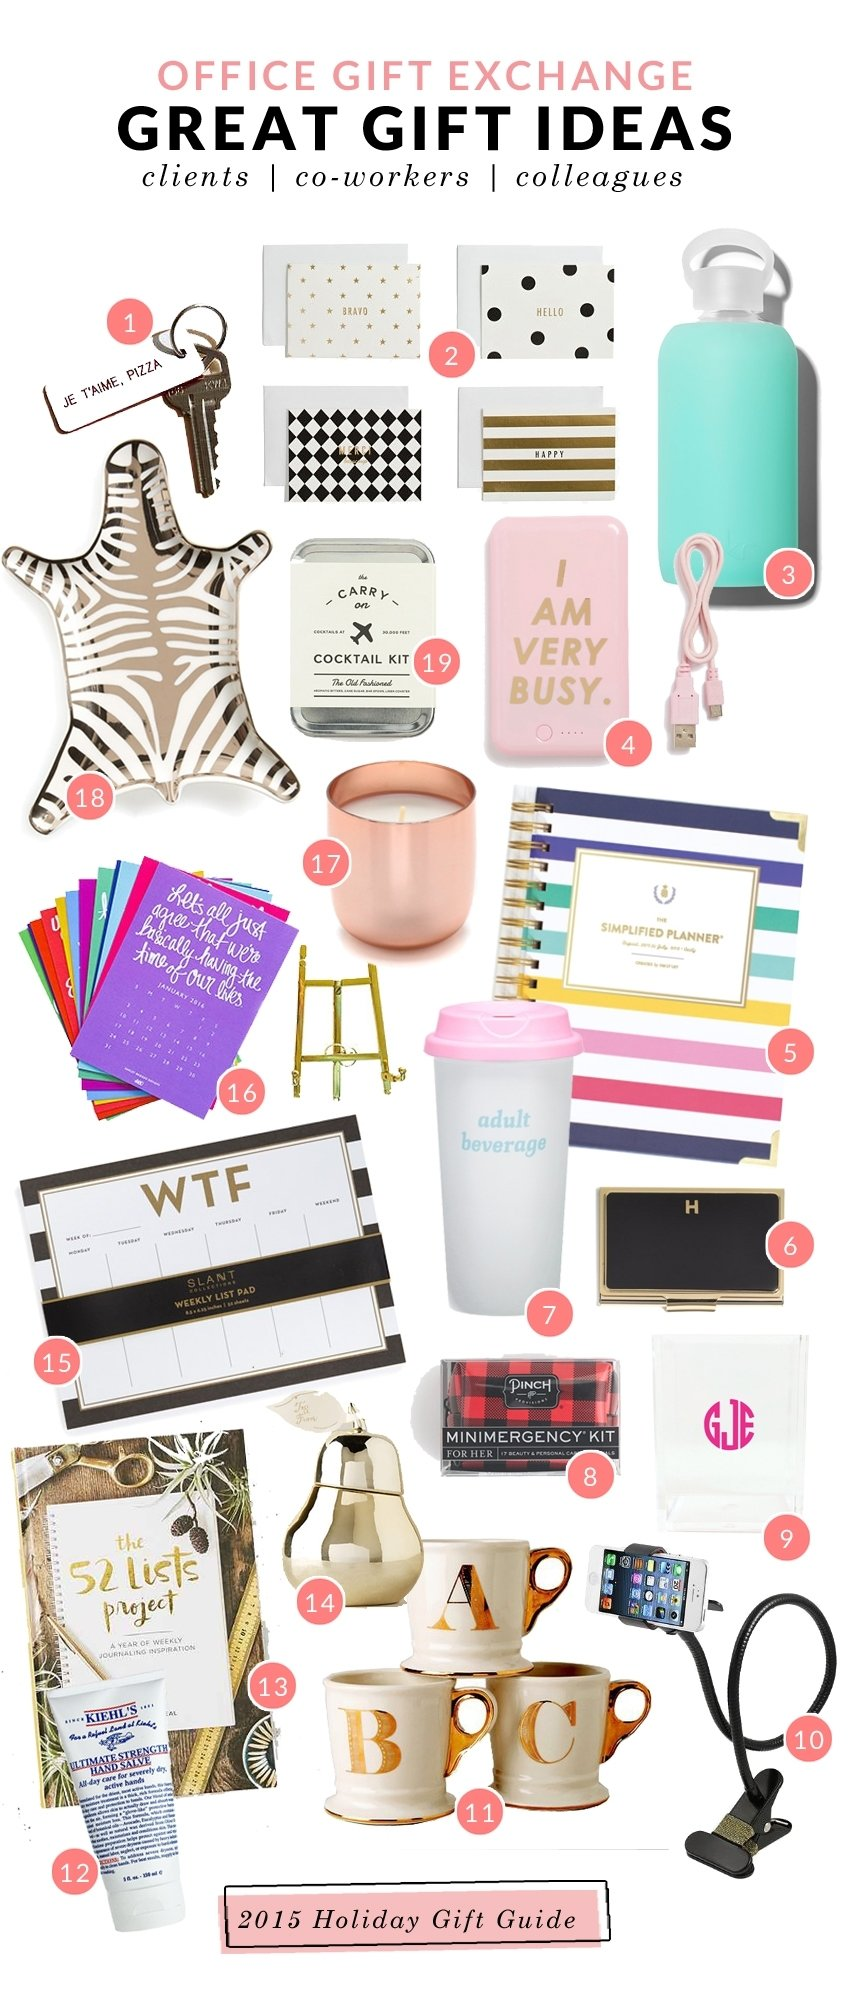 10 most recommended secret santa ideas for work great secret santa gift ideas for co workers